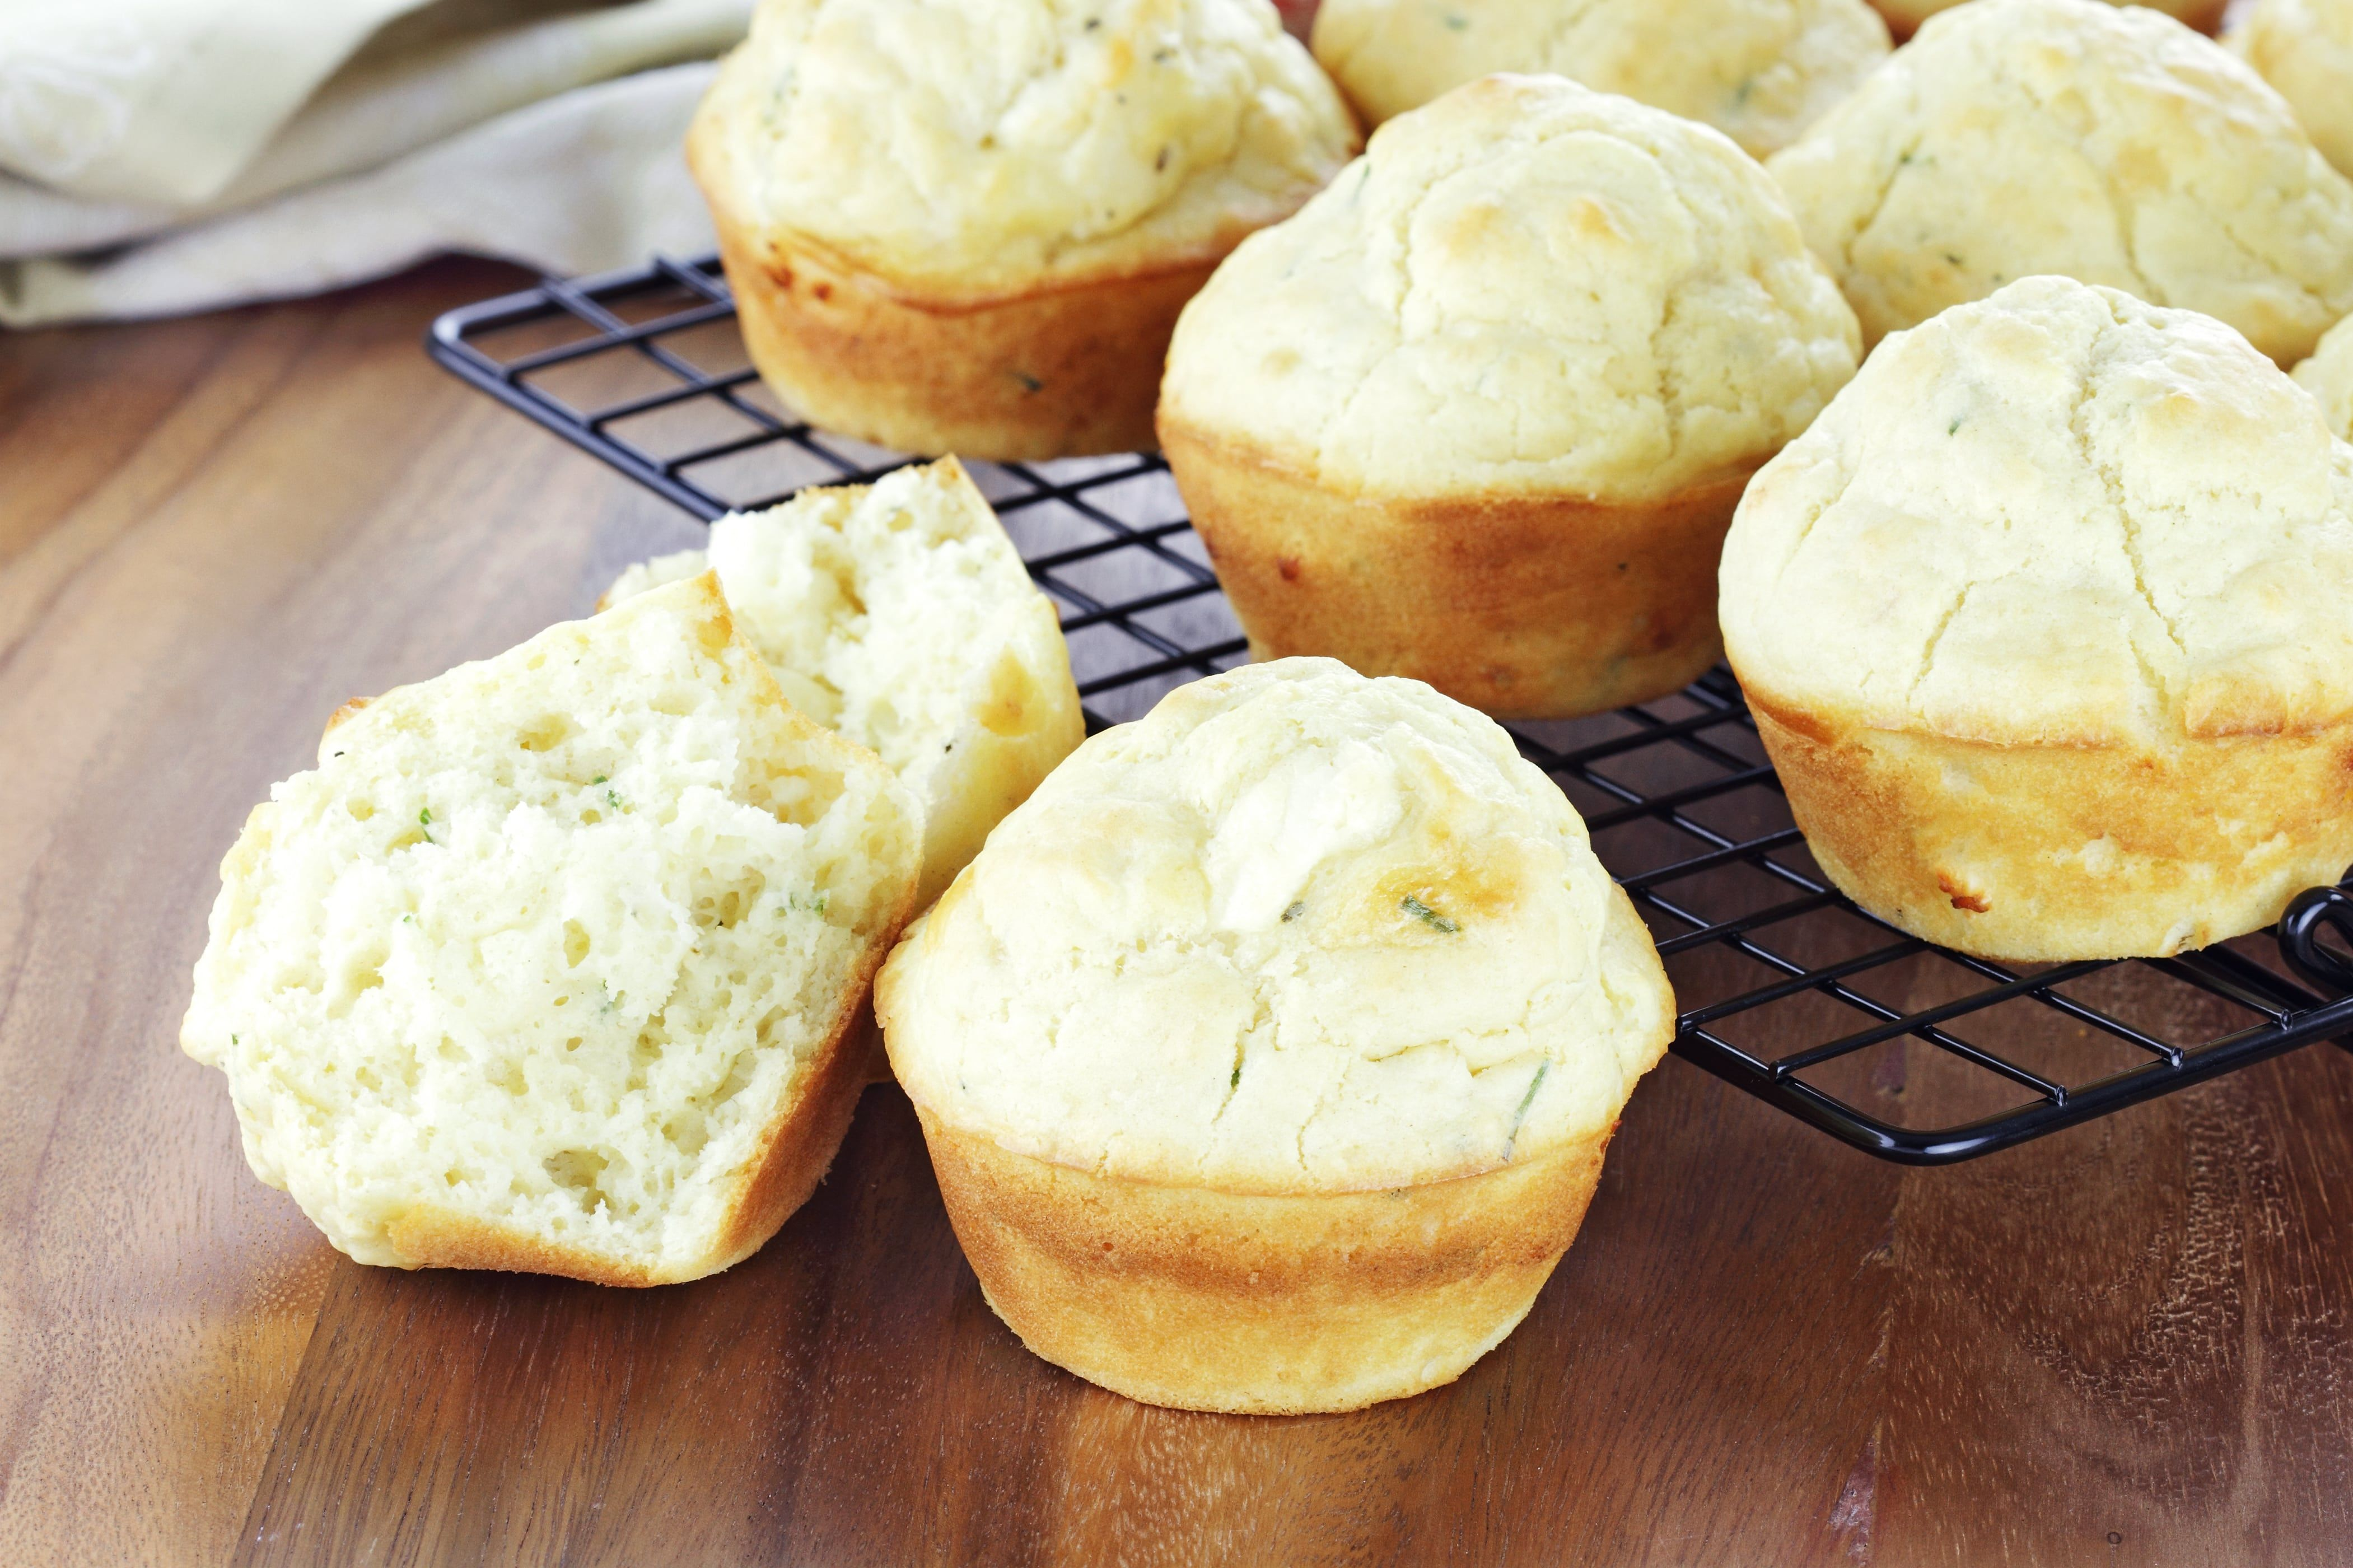 Low Carb Savory Chive Muffins Low Carb Savory Chive Muffins made with almond flour, fresh chives, and egg whites for a fluffy, keto muffin that will satisfy any bread craving.